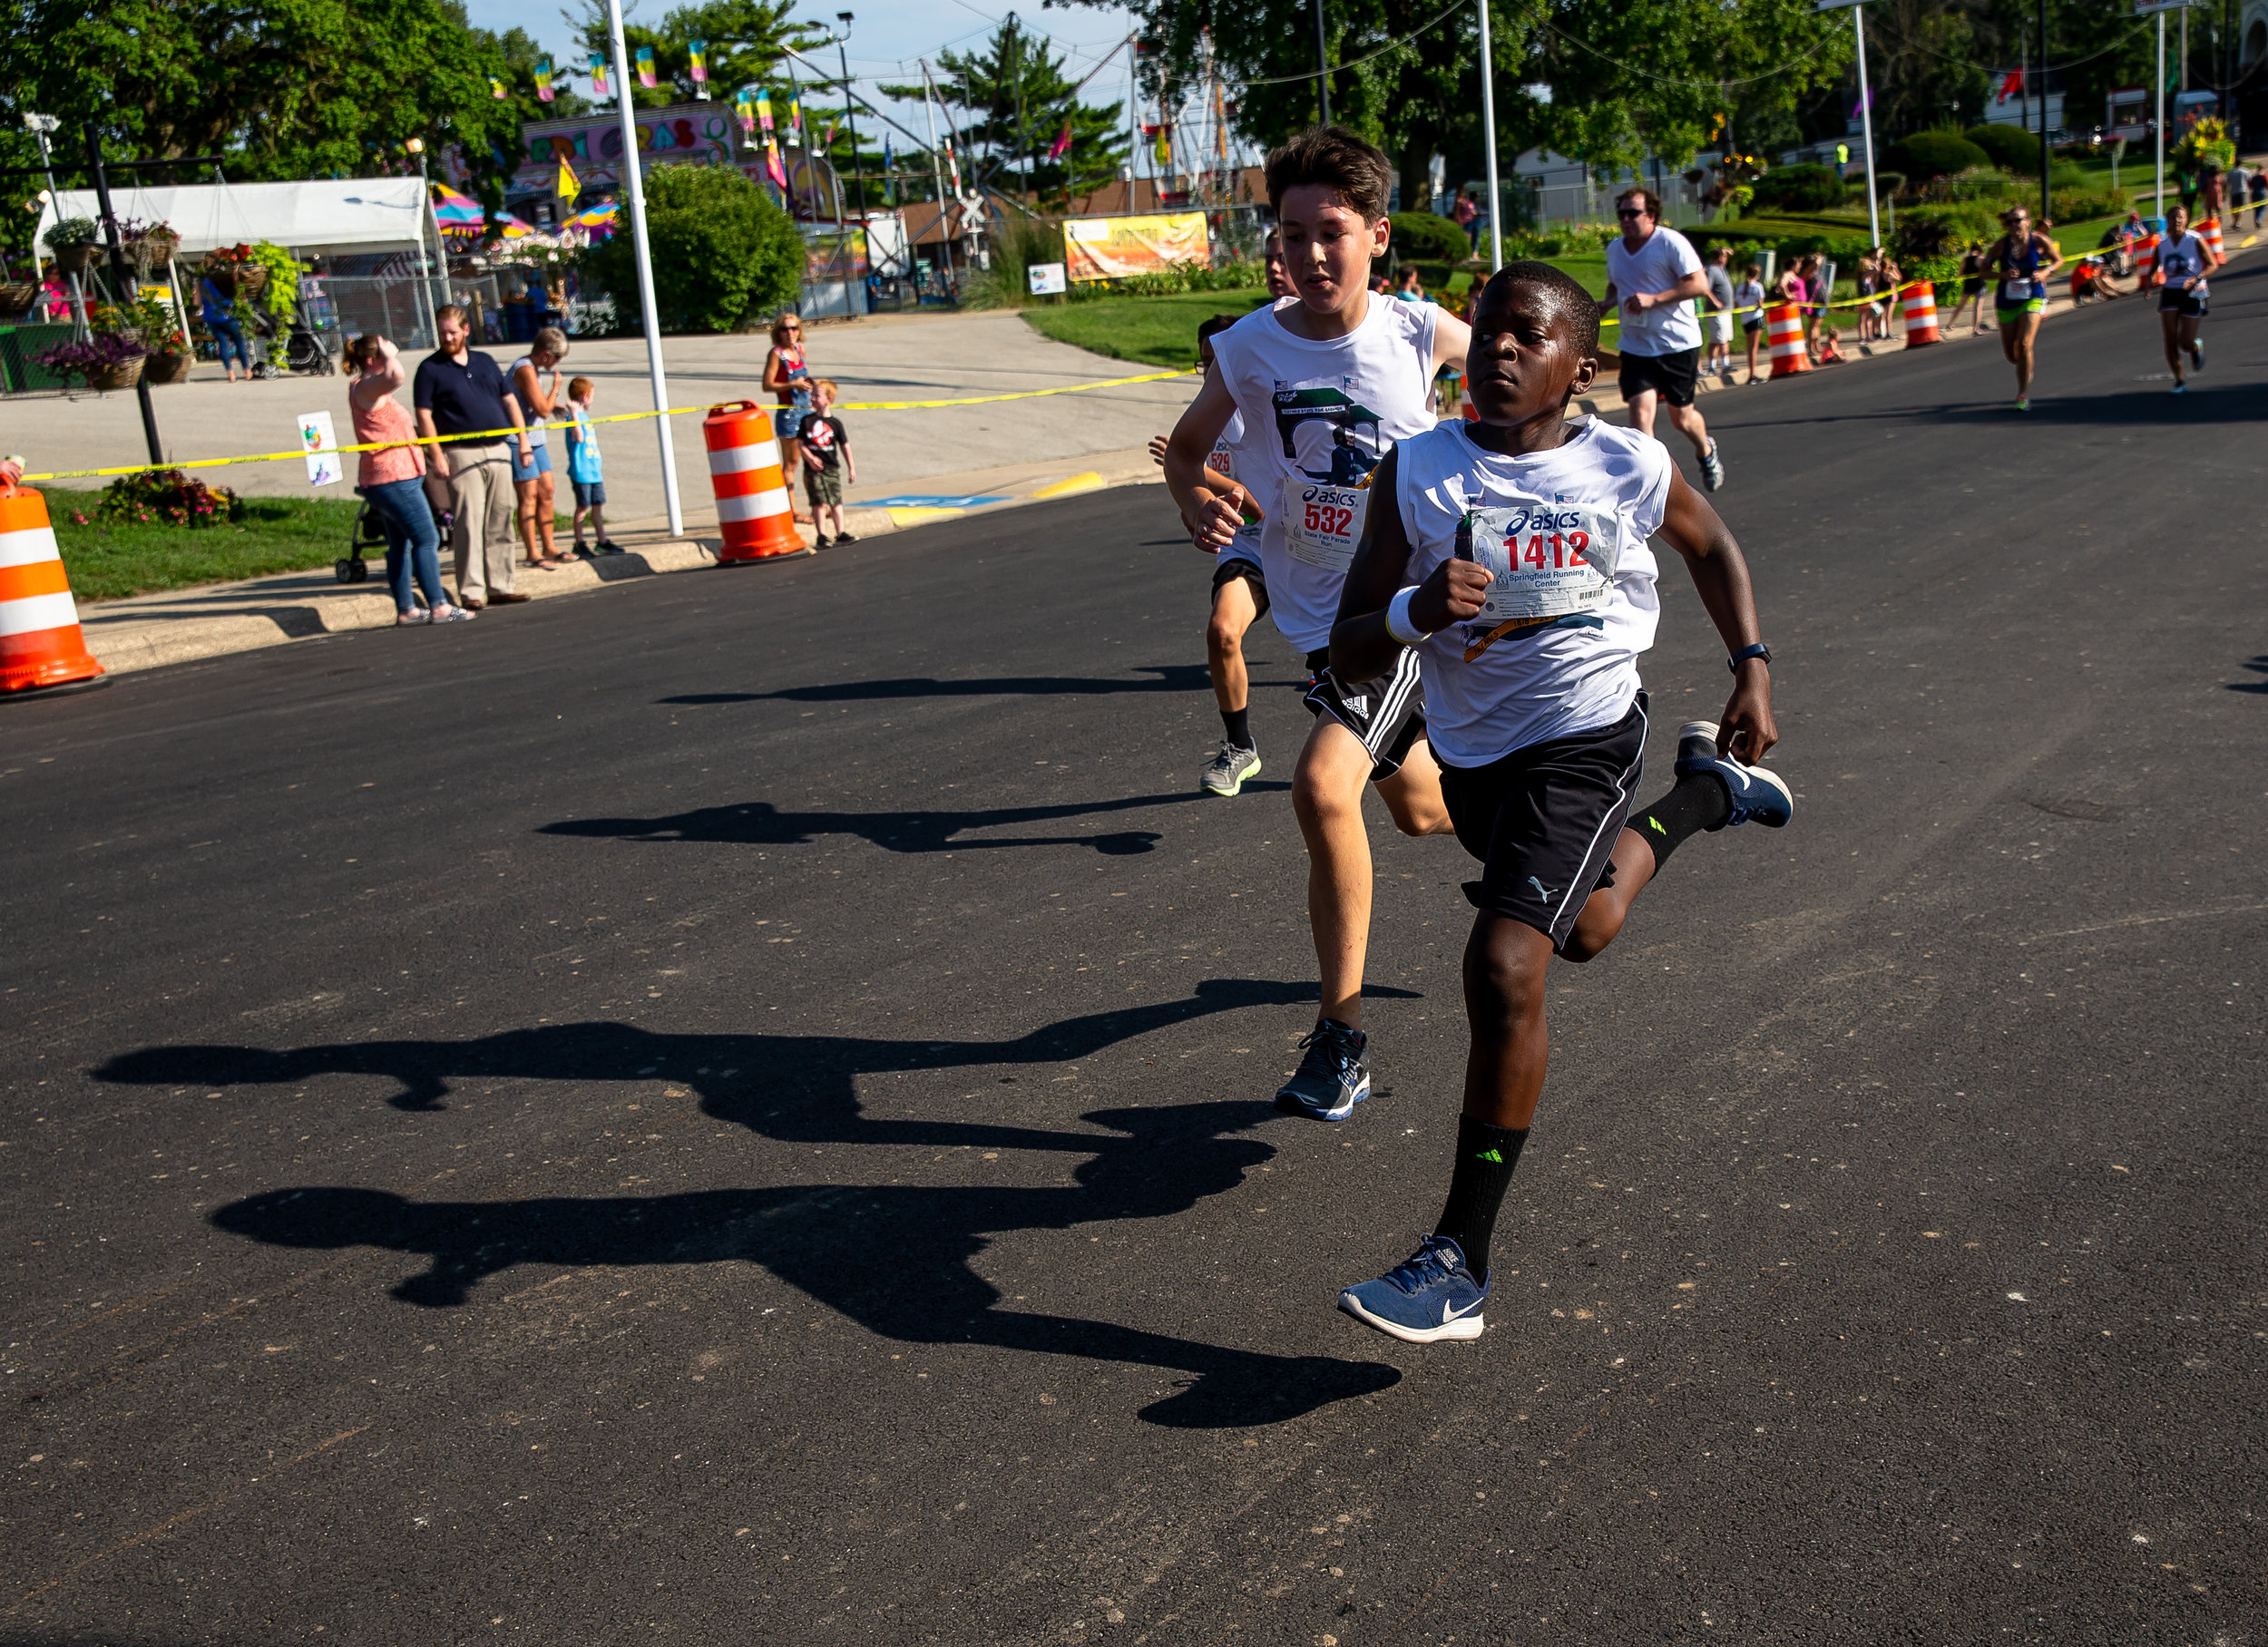 Luke Smith sprints out the final stretch of the Illinois State Fair Parade Run prior to the Illinois State Fair Twilight Parade, Thursday, Aug. 9, 2018, in Springfield, Ill. [Justin L. Fowler/The State Journal-Register]